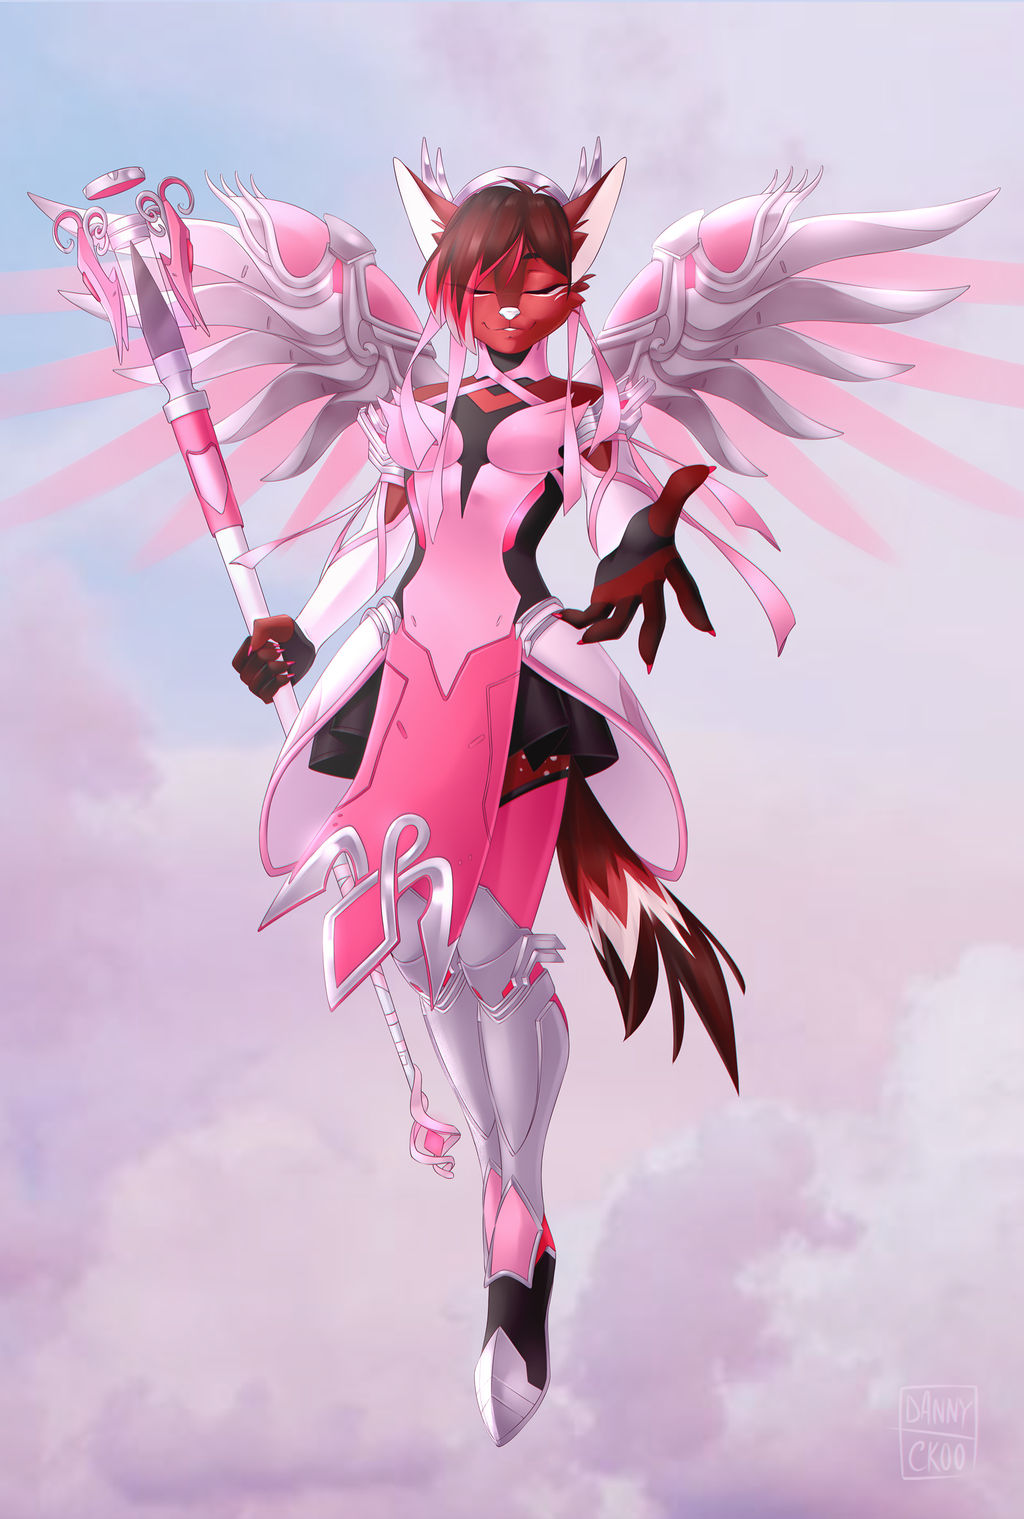 pink_mercy_by_dannyckoo_dcix7cy-fullview.jpg